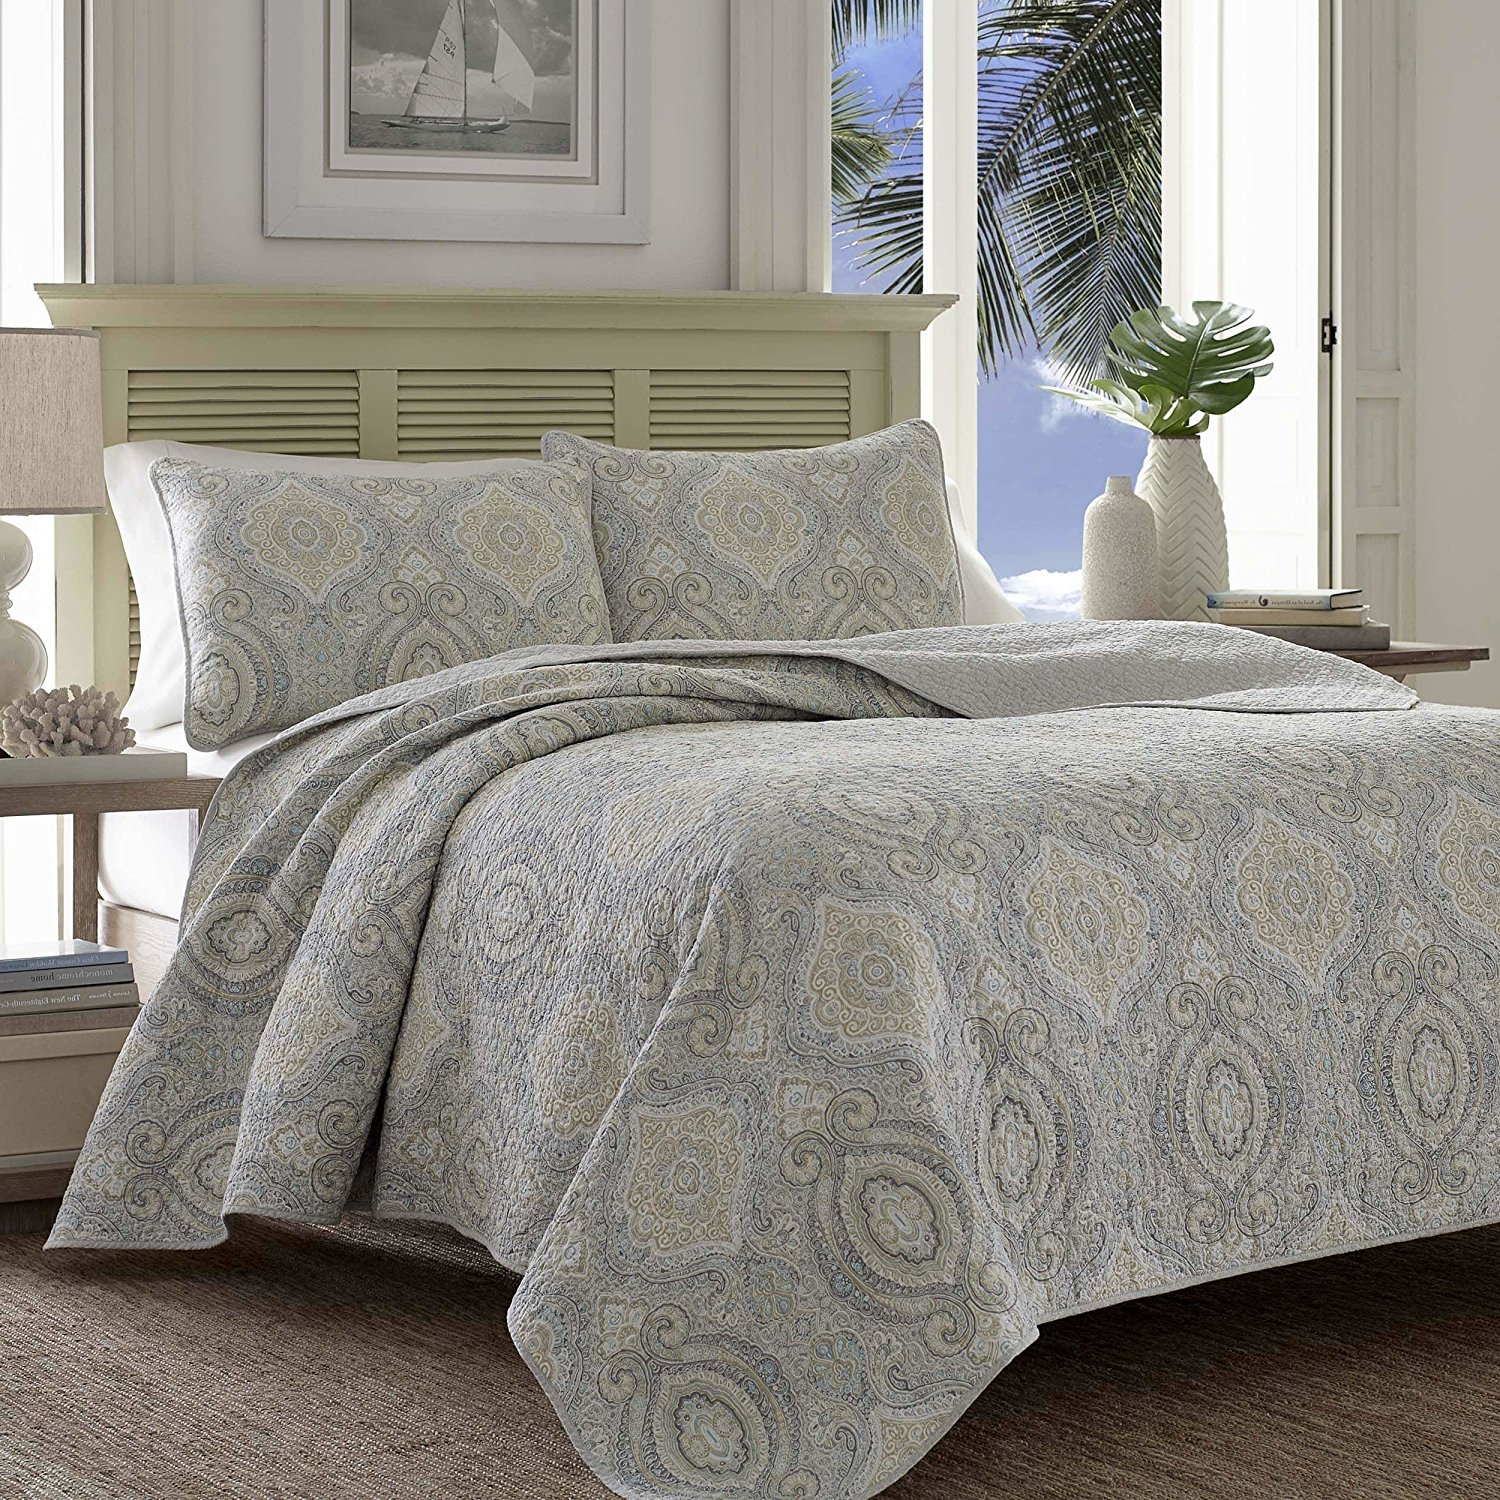 3 Piece Silver Grey Paisley Quilt Full Queen Set, Gray Tan Geometric Medallion Floral Pattern Theme Bedding Bohemian Modern Shabby Chic Classic Traditional Reversible Quilted Texture Bedspread, Cotton